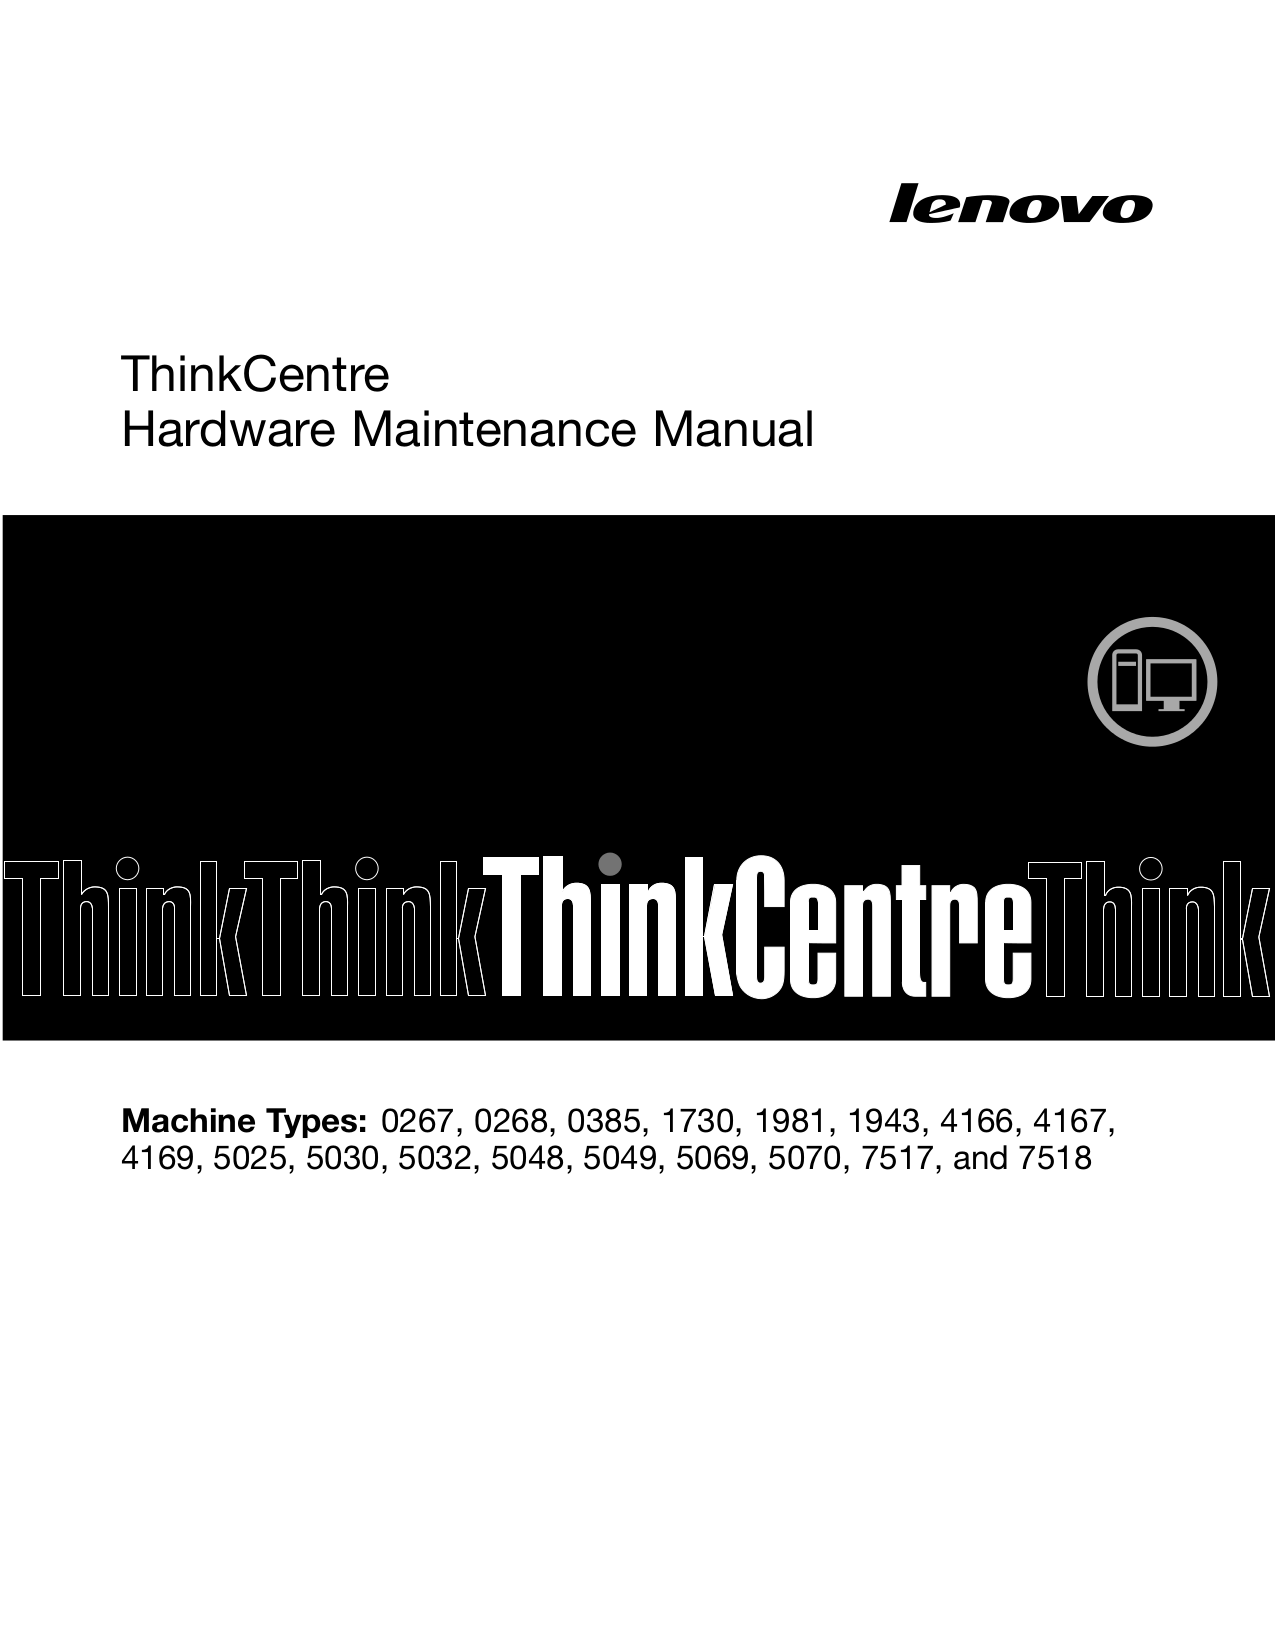 pdf for Lenovo Desktop ThinkCentre M81 1730 manual